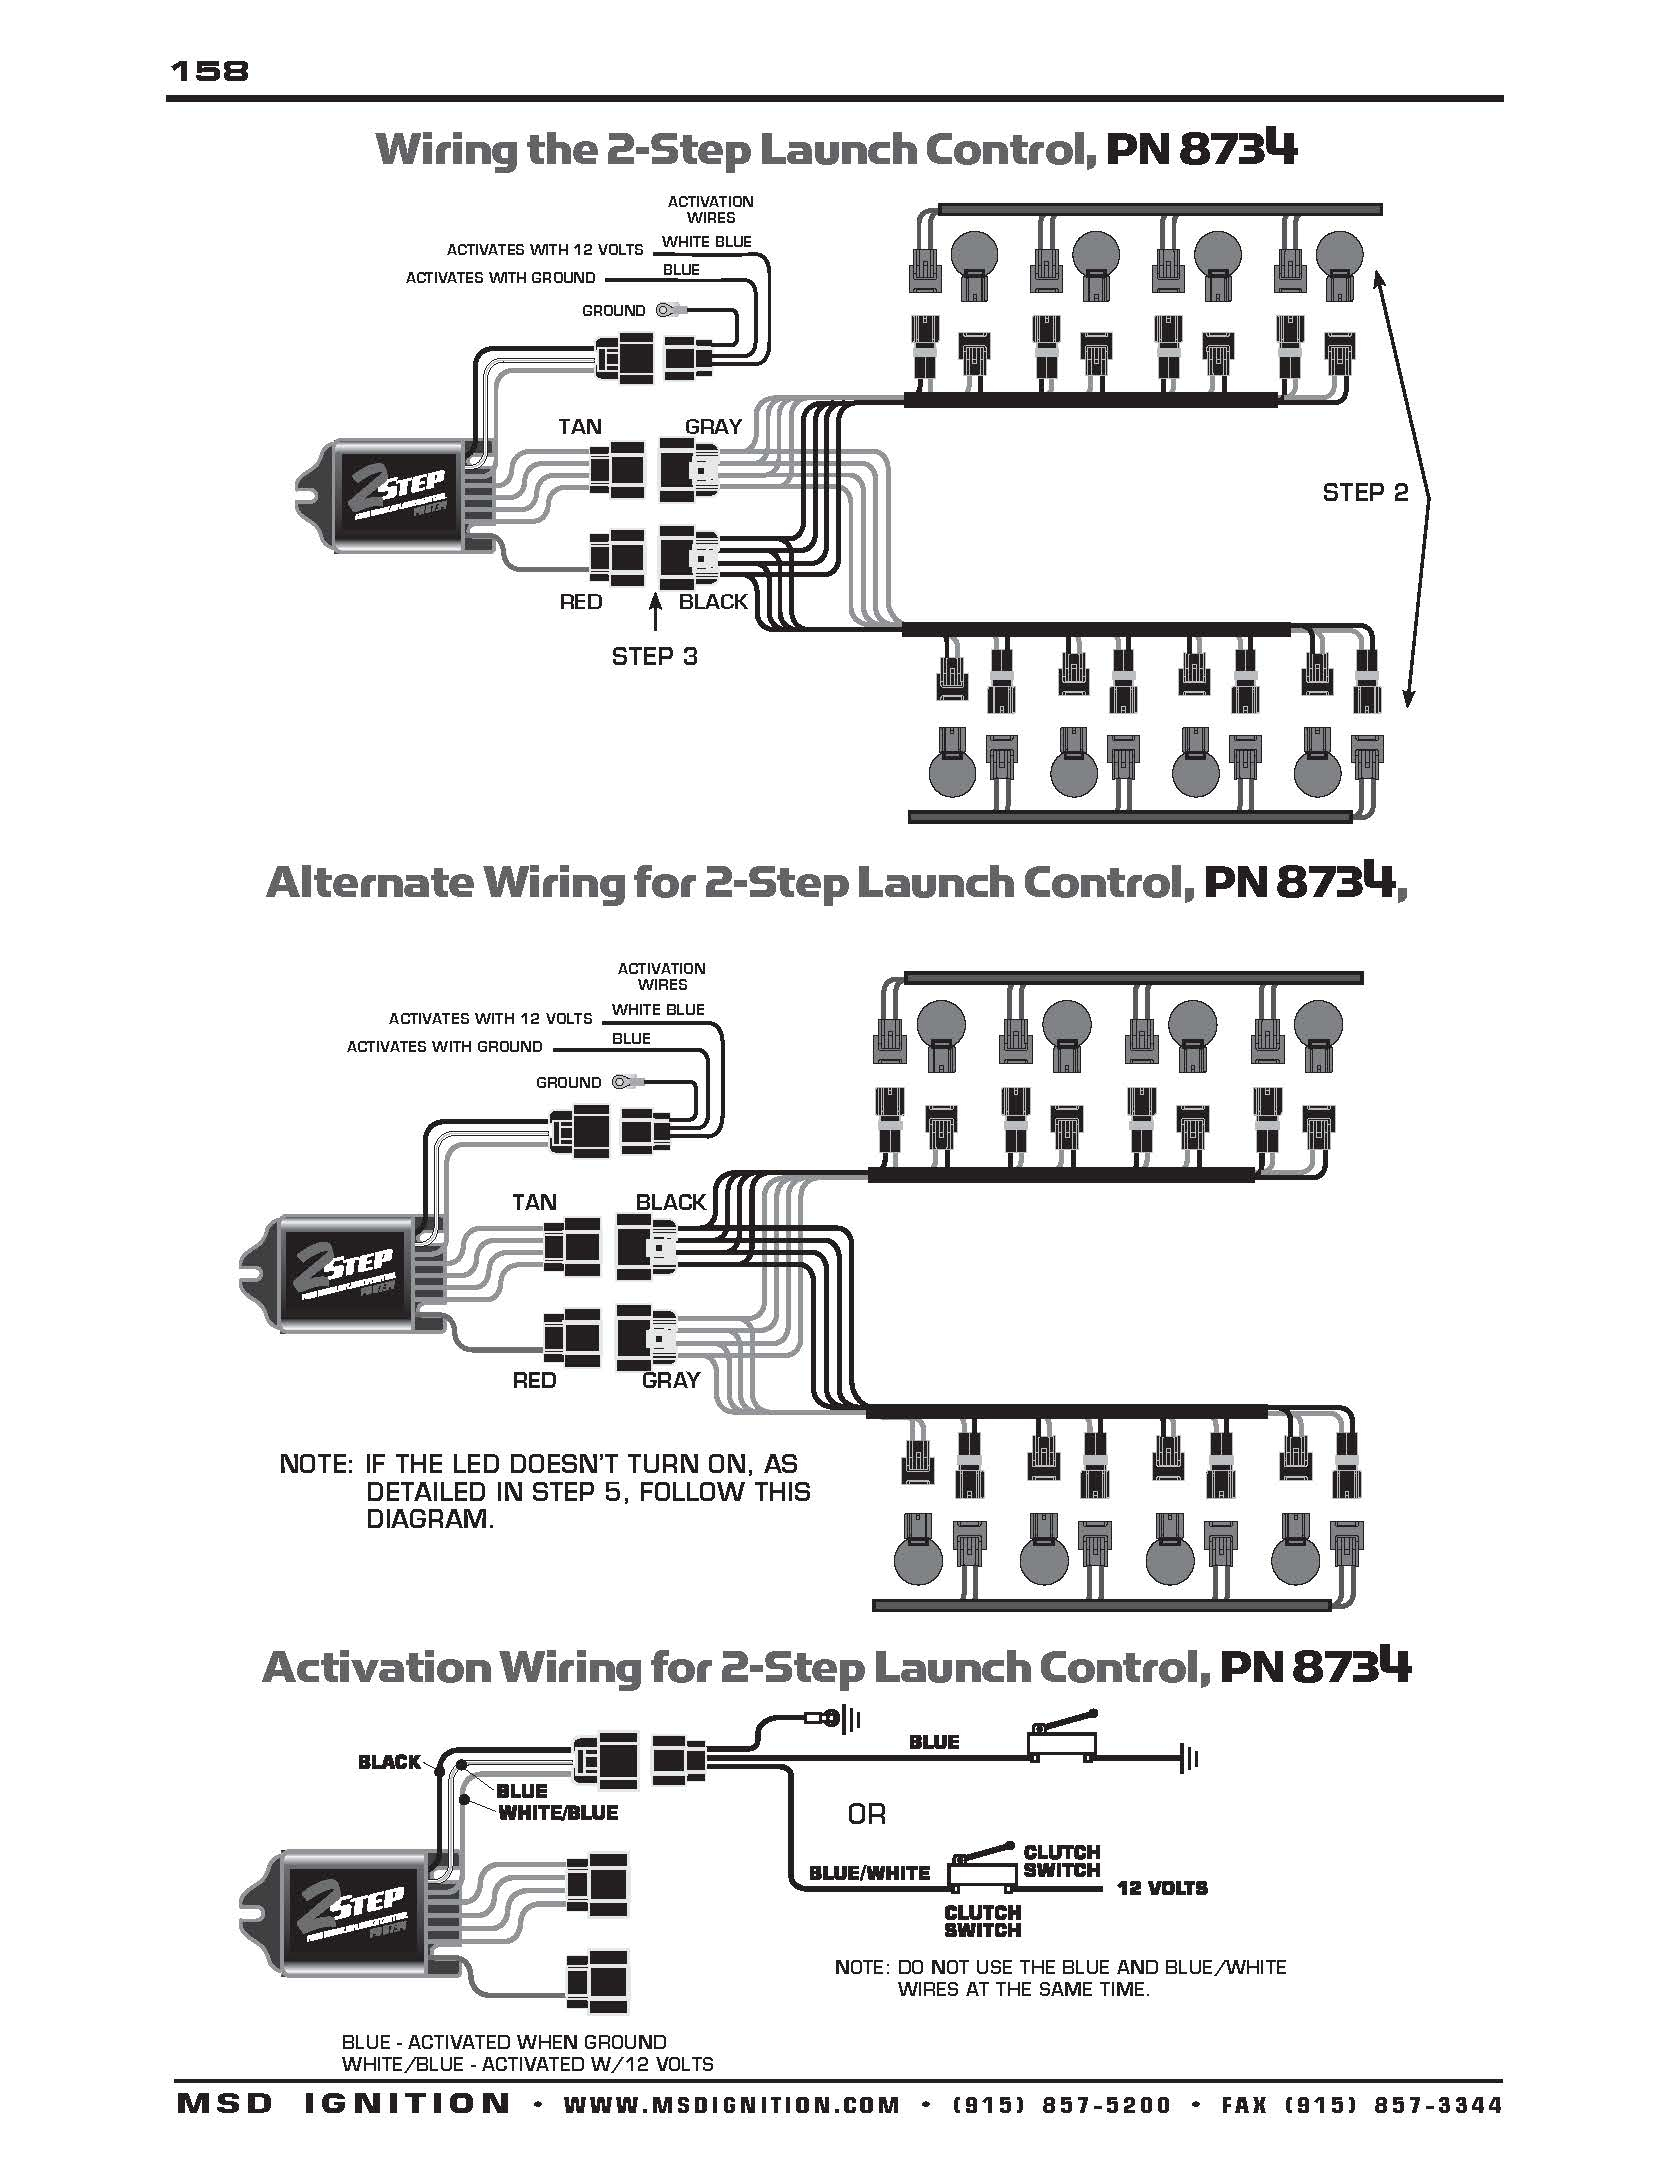 Msd 6A Wiring Diagram - Data Wiring Diagram Today - Msd 6A Wiring Diagram